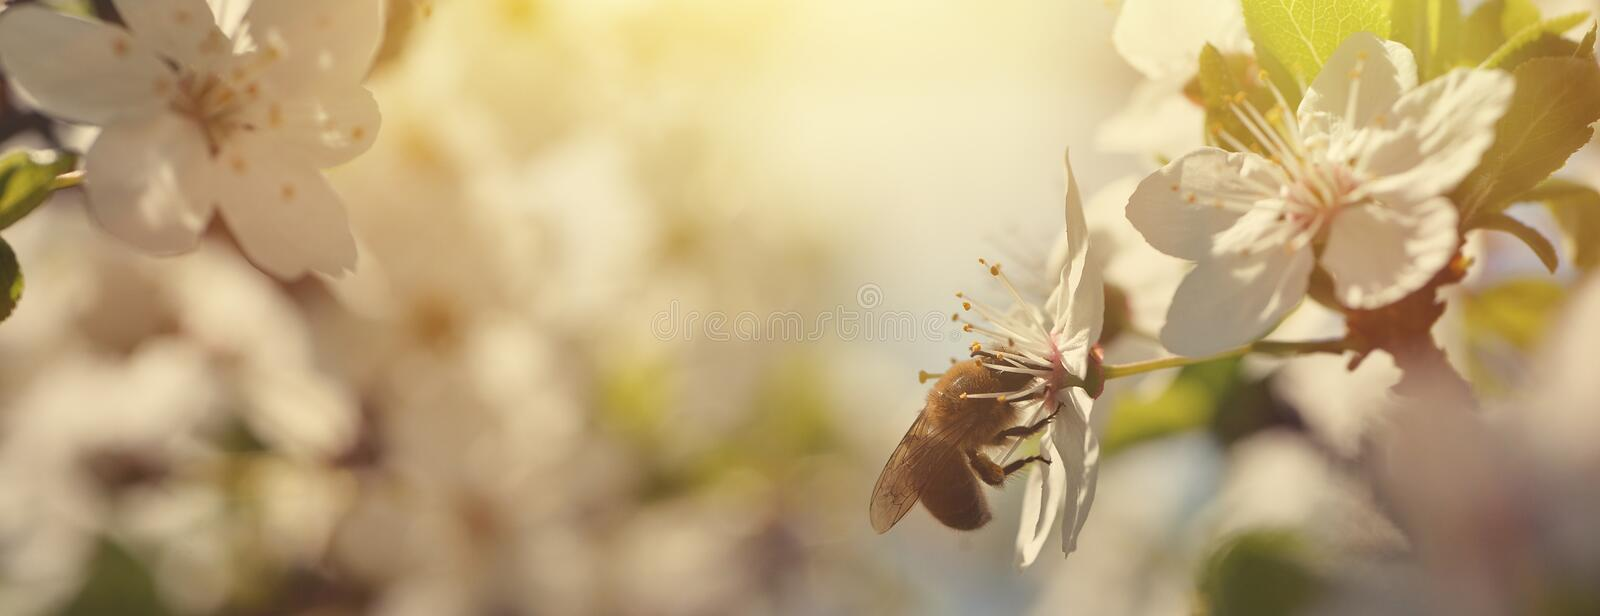 Beautiful nature background with blooming cherries and a bee. Spring flowers. Beautiful Orchard Abstract blurred background. stock image